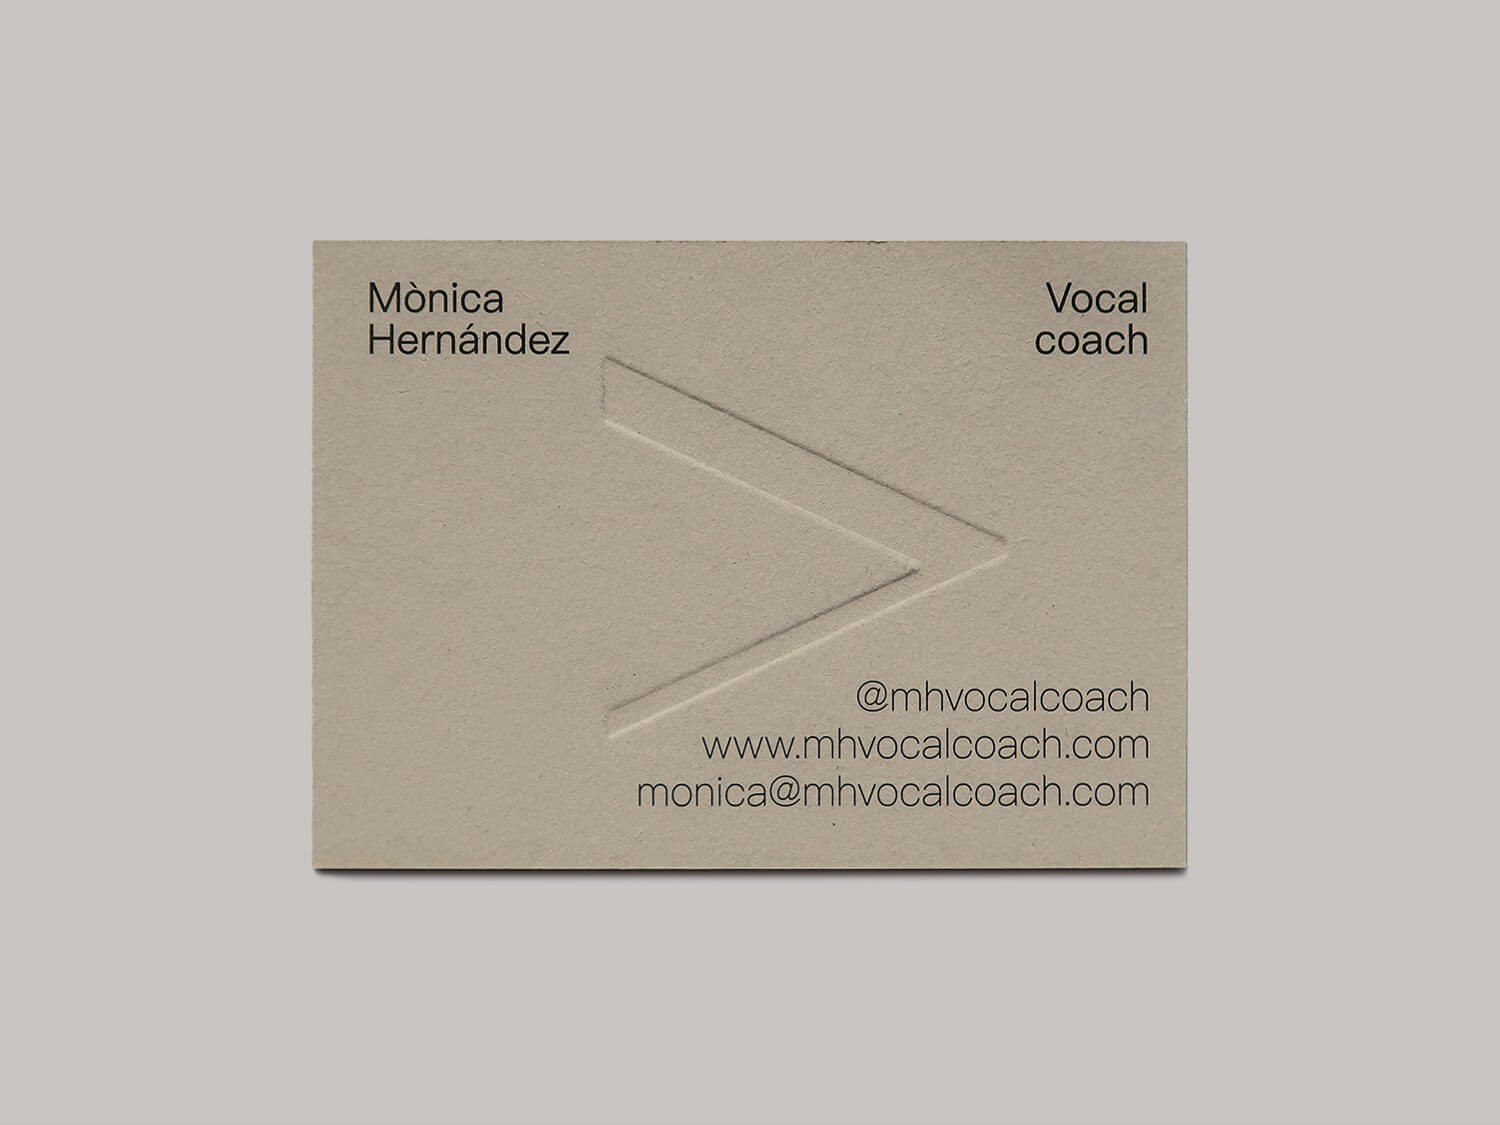 miguel porlan, illustration, graphic design, collage, business card, vocal coach